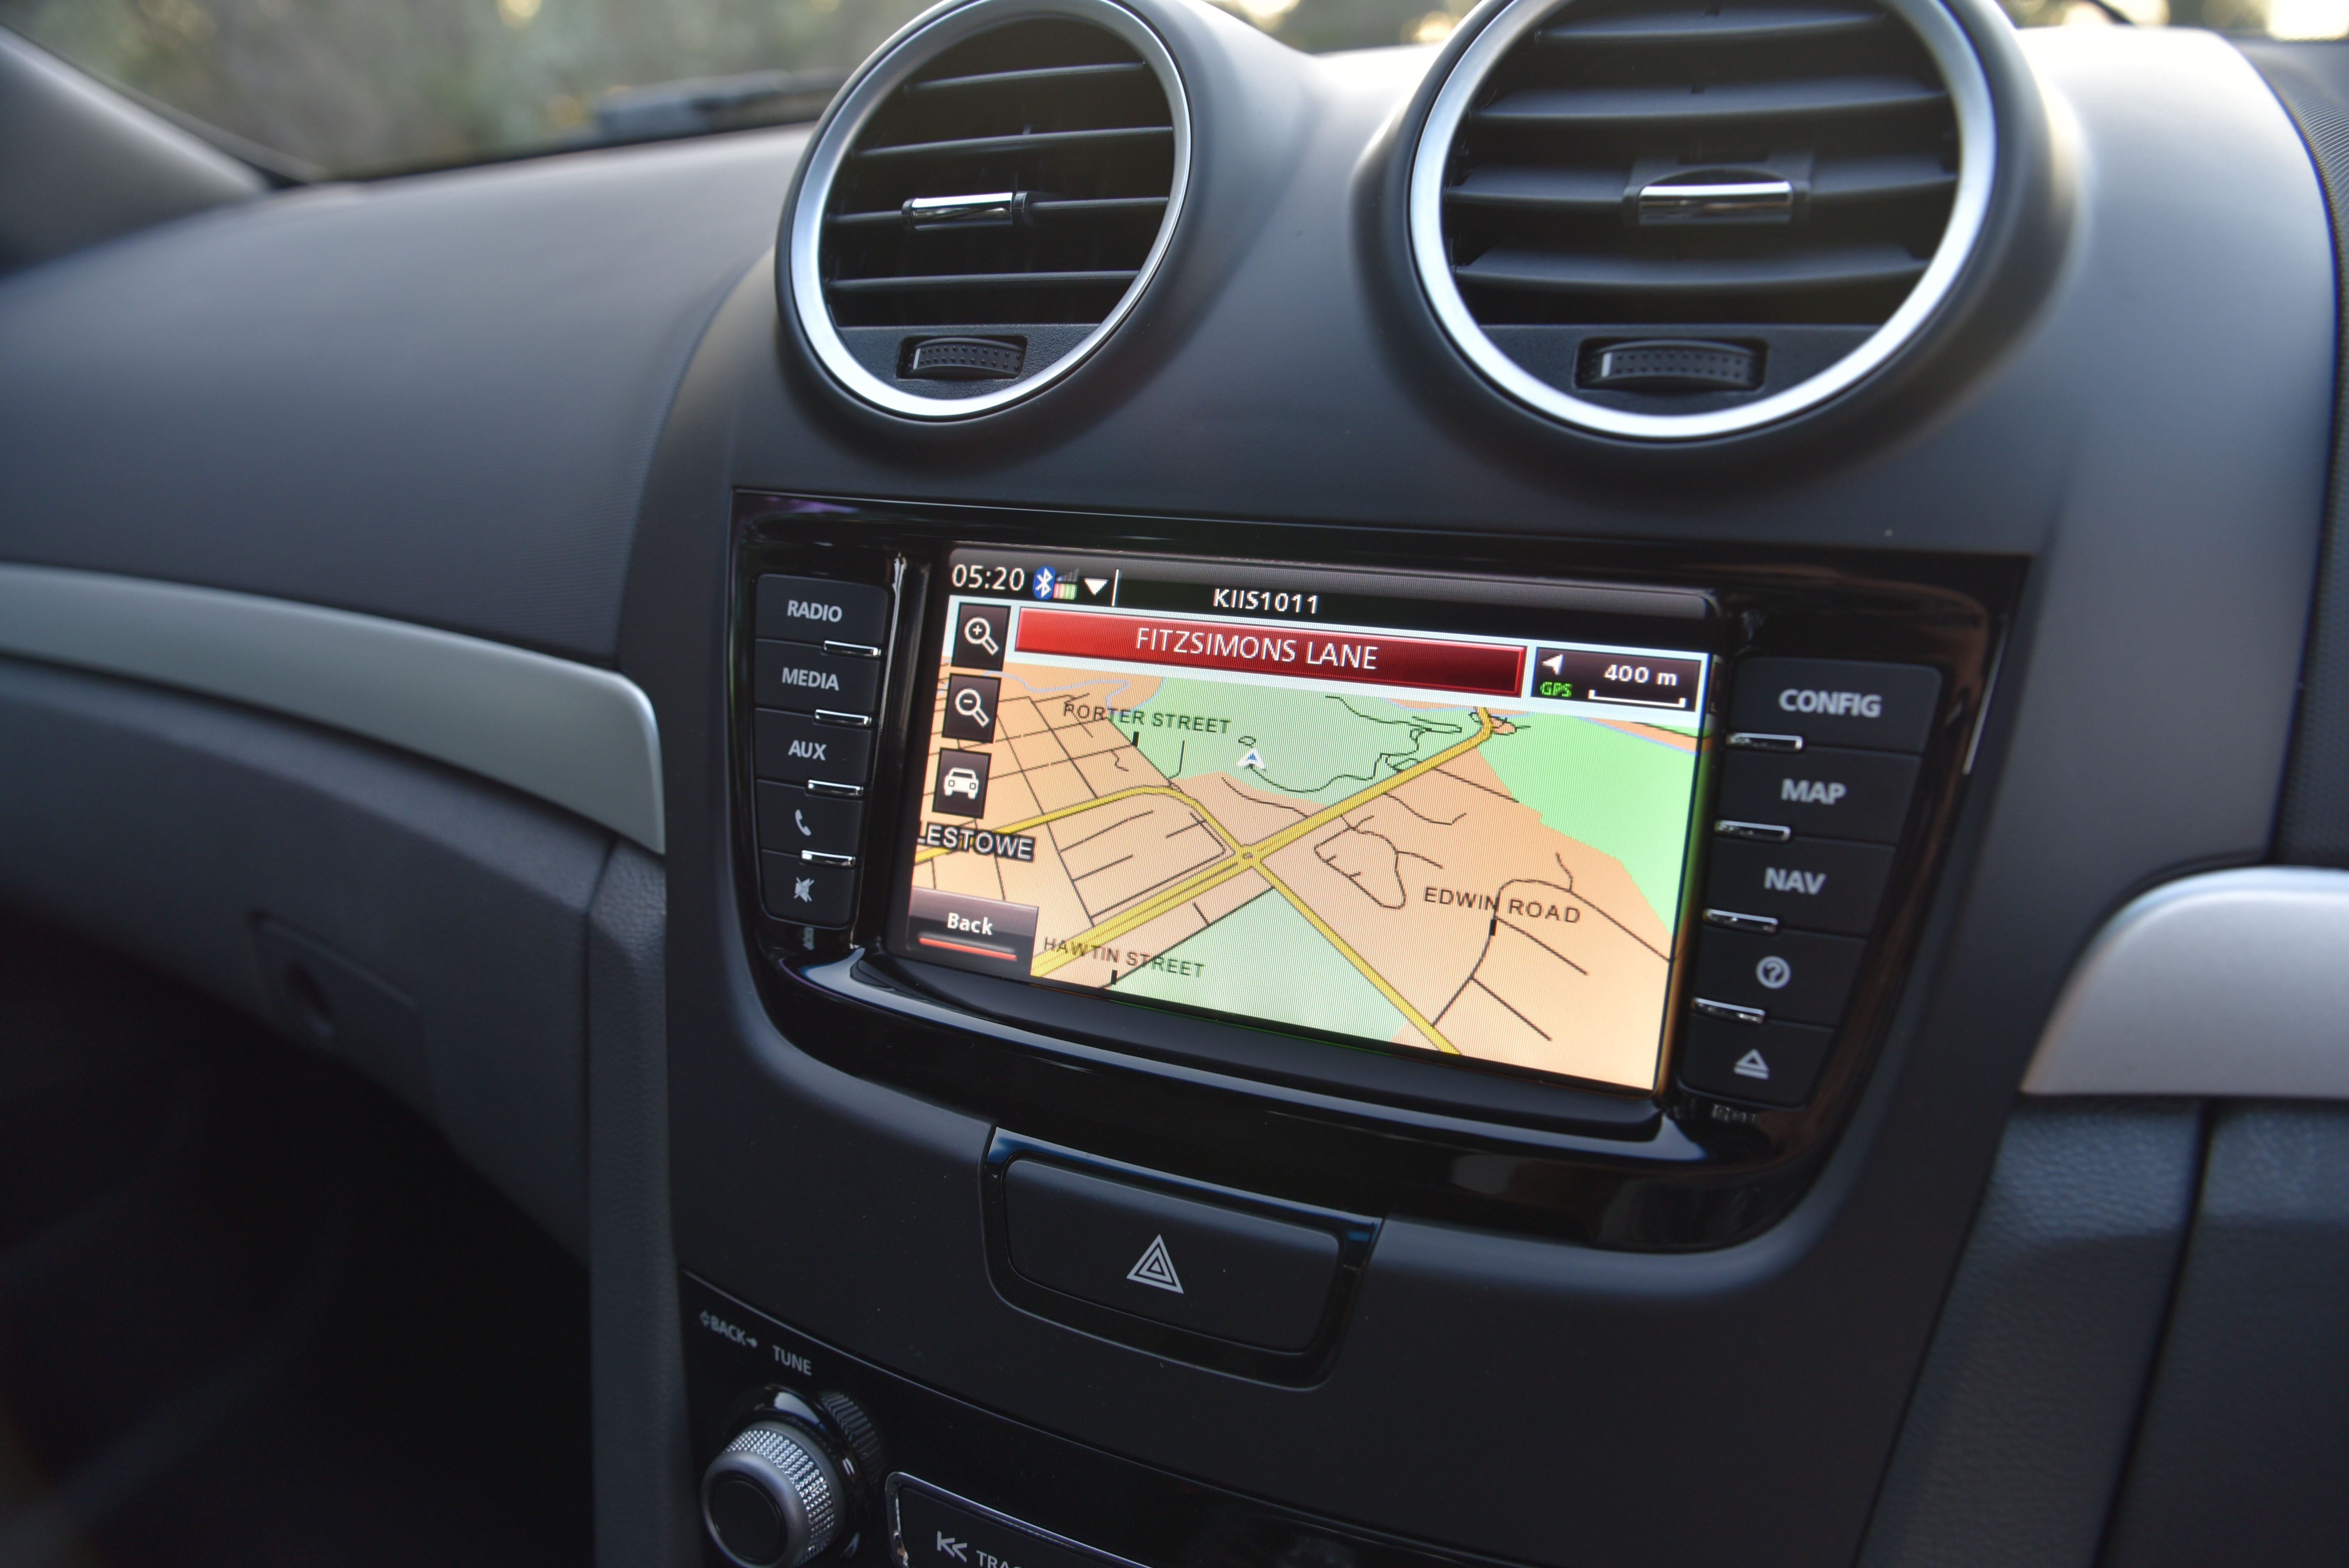 Holden IQ Navigation Upgrade – VE Commodore – AutoInstruct